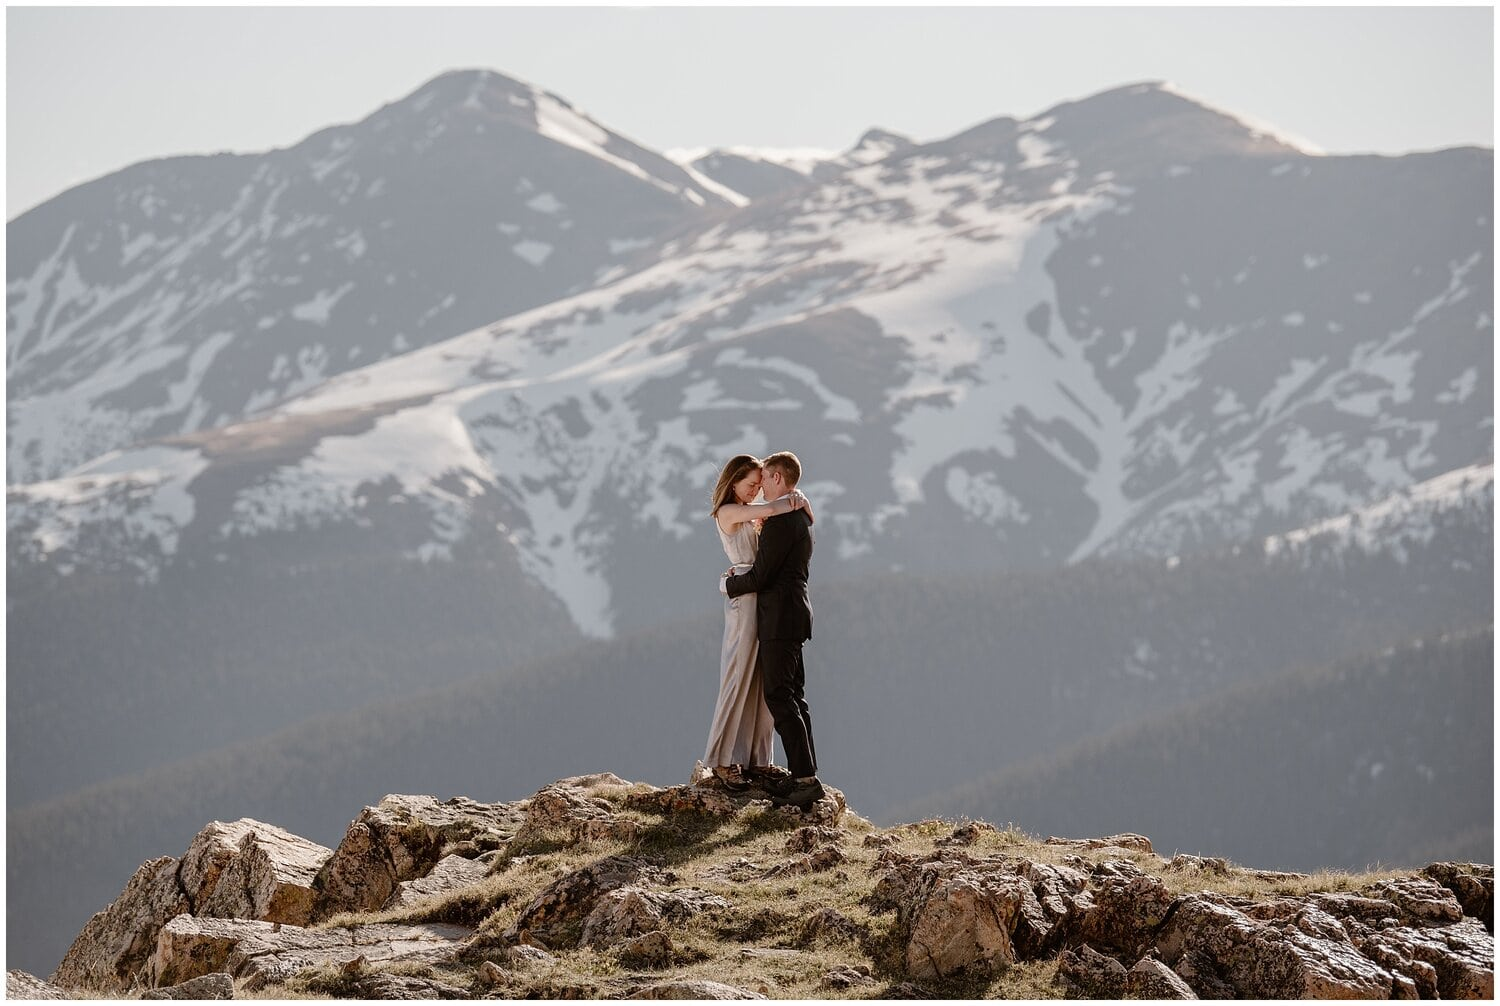 Bride and groom embrace on a mountain during their elopement.